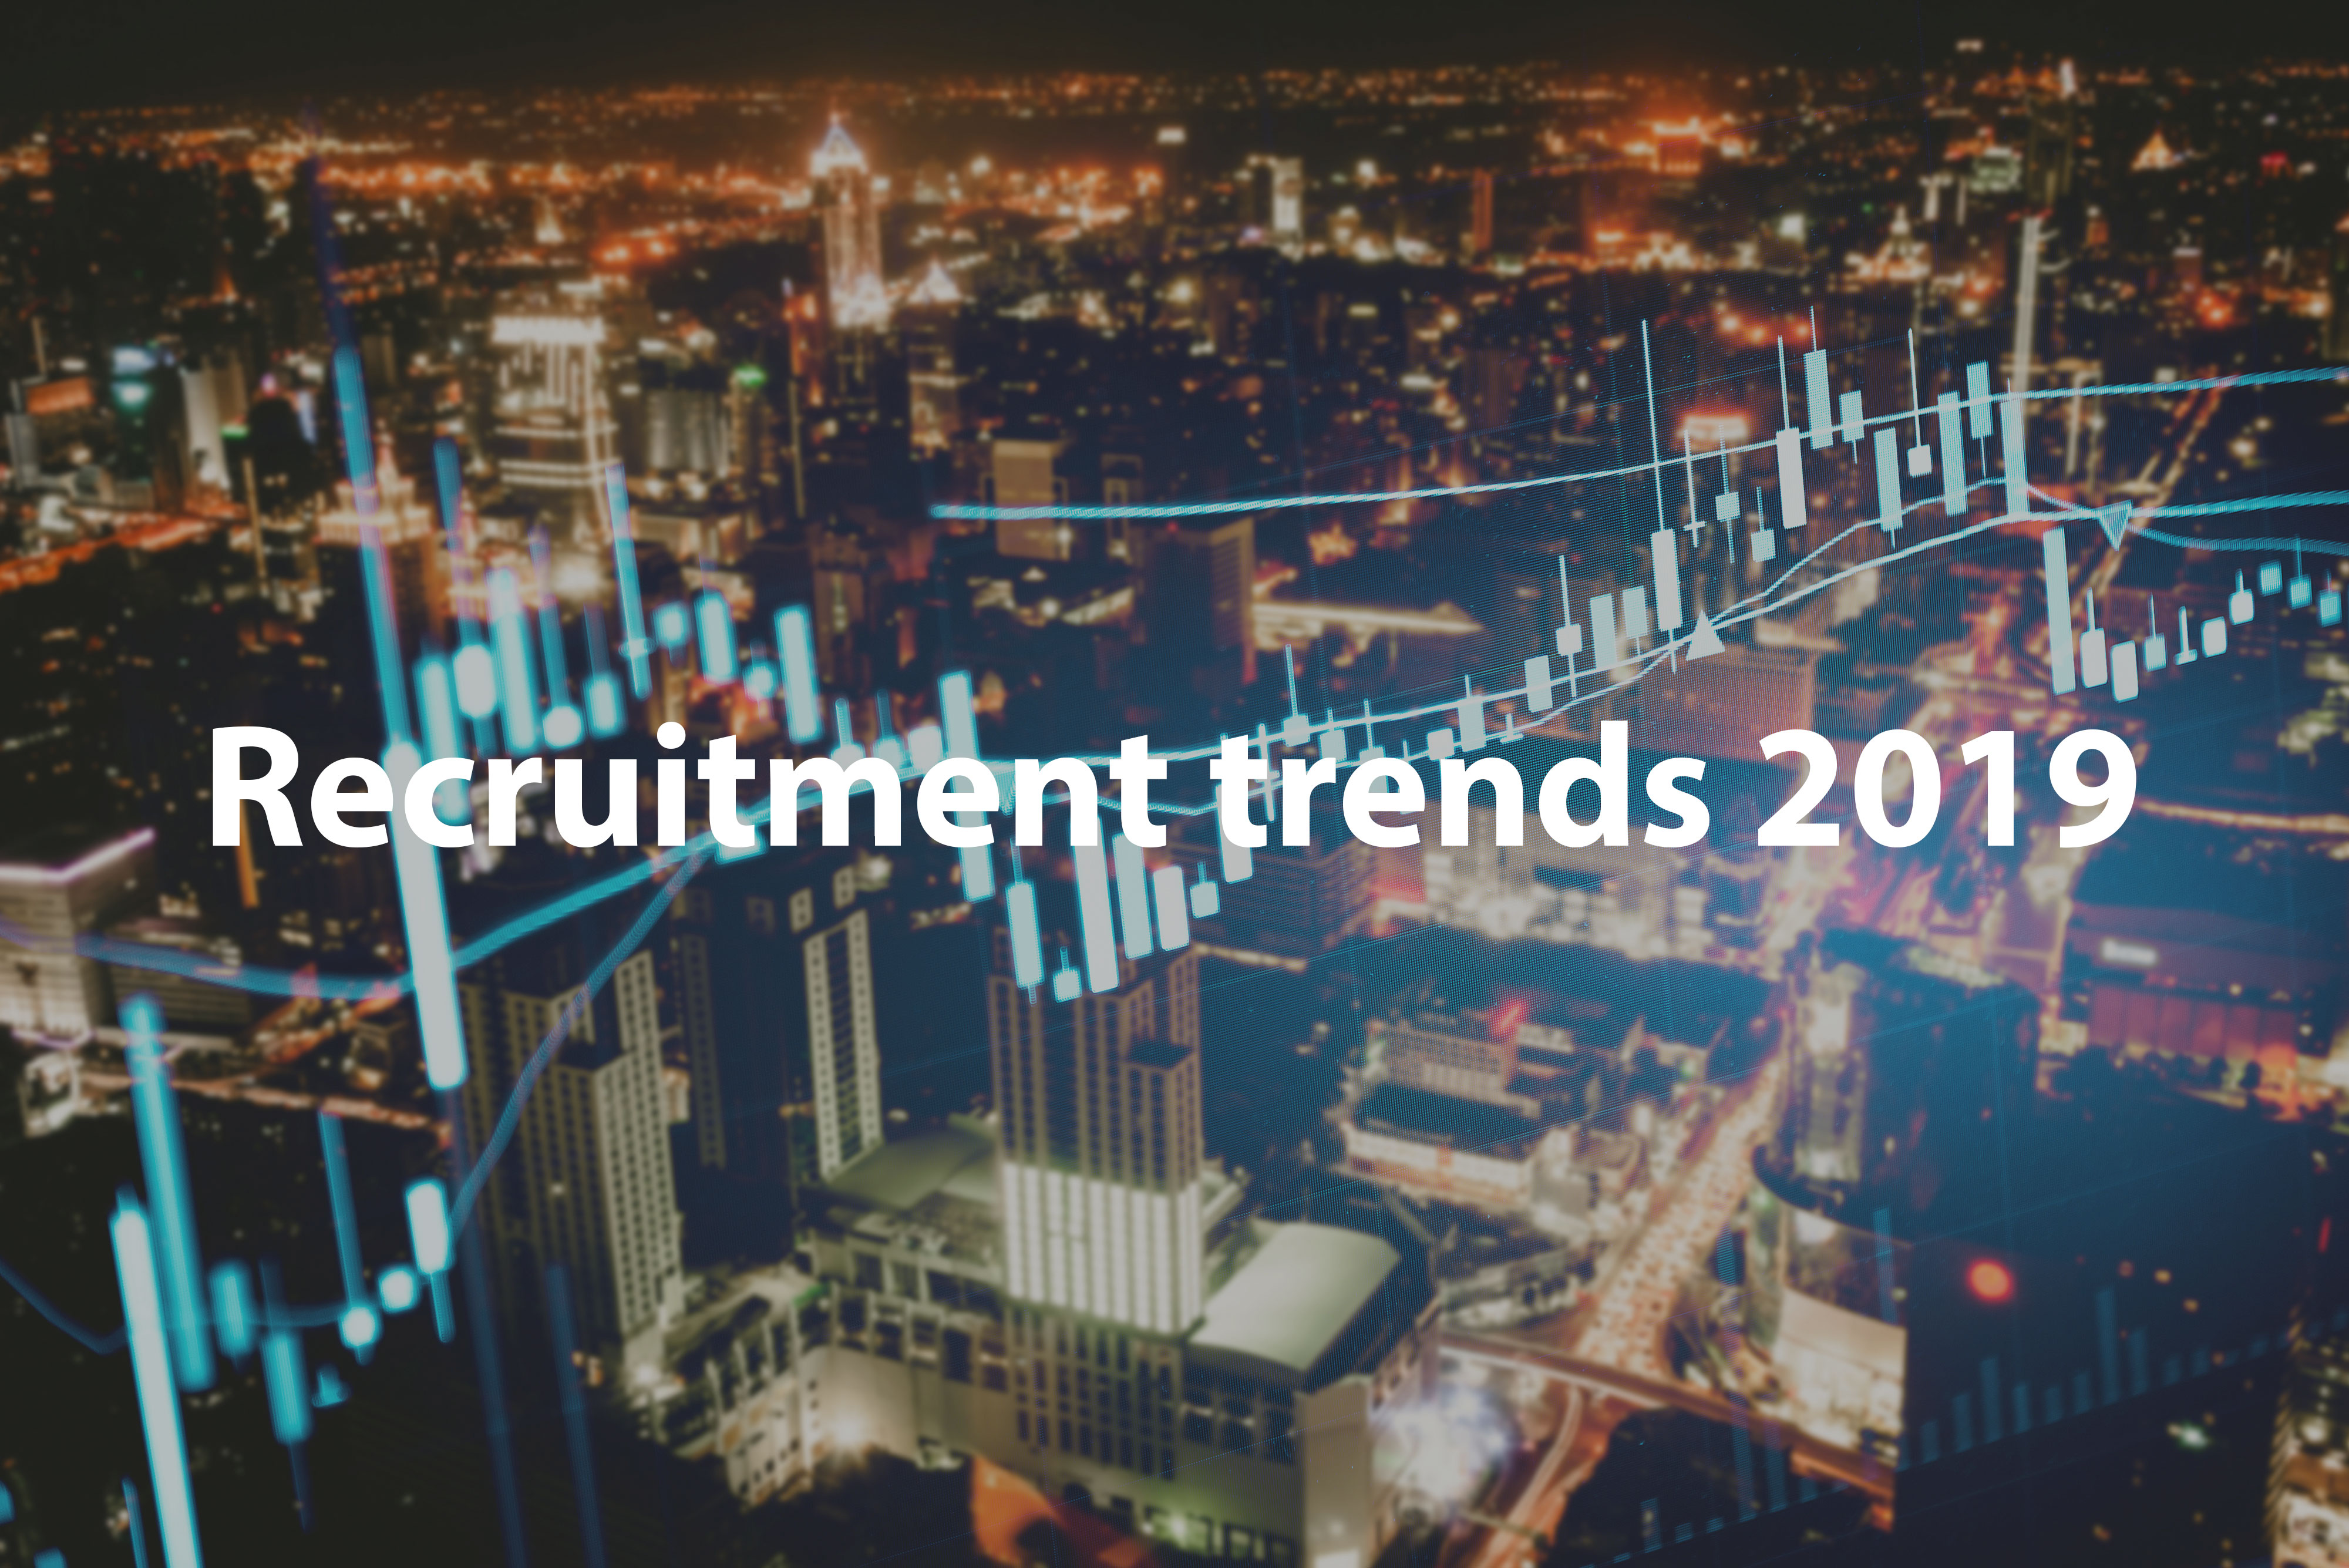 Top 5 Recruiting Trends for 2019